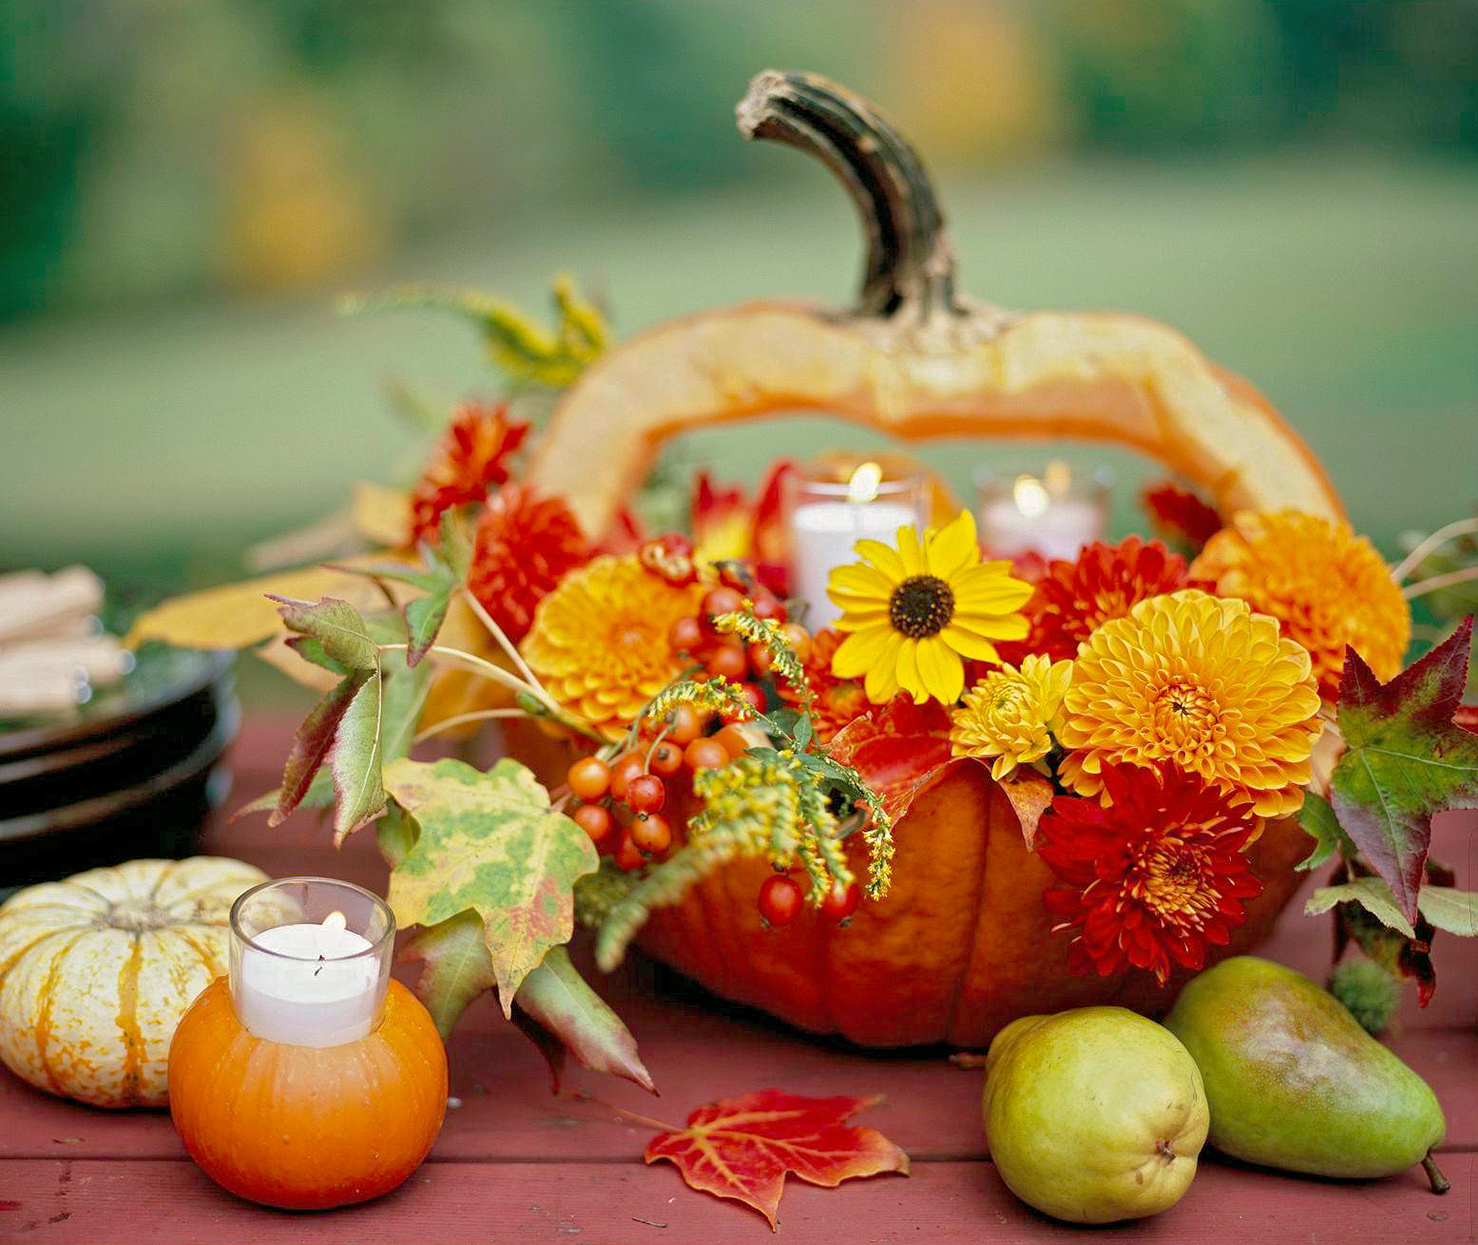 hollowed-out pumpkin with flowers and candles